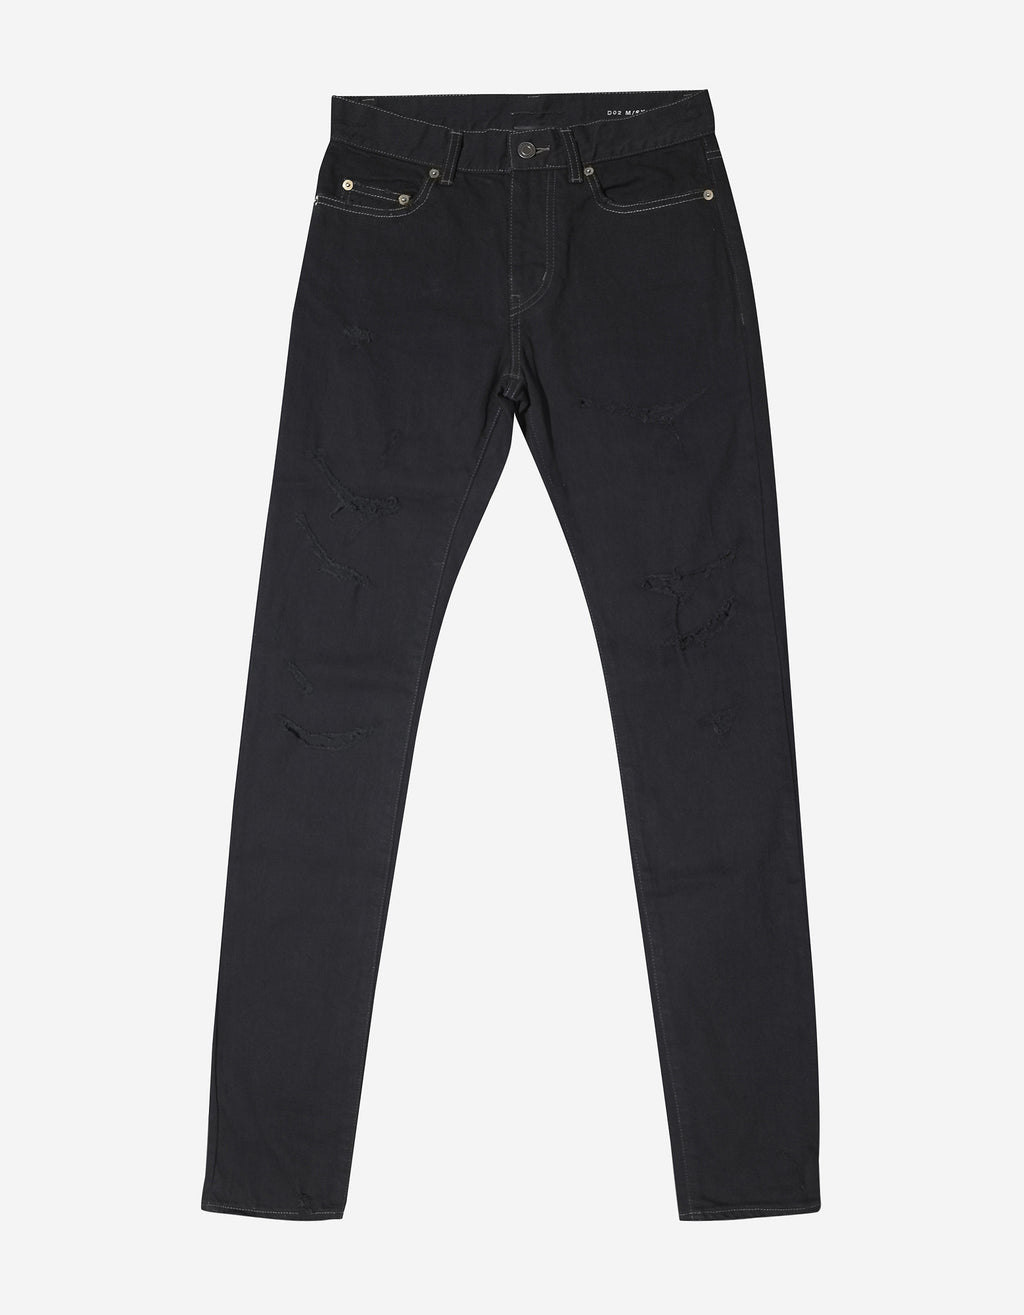 Black D02 Destroyed Denim Skinny Jeans